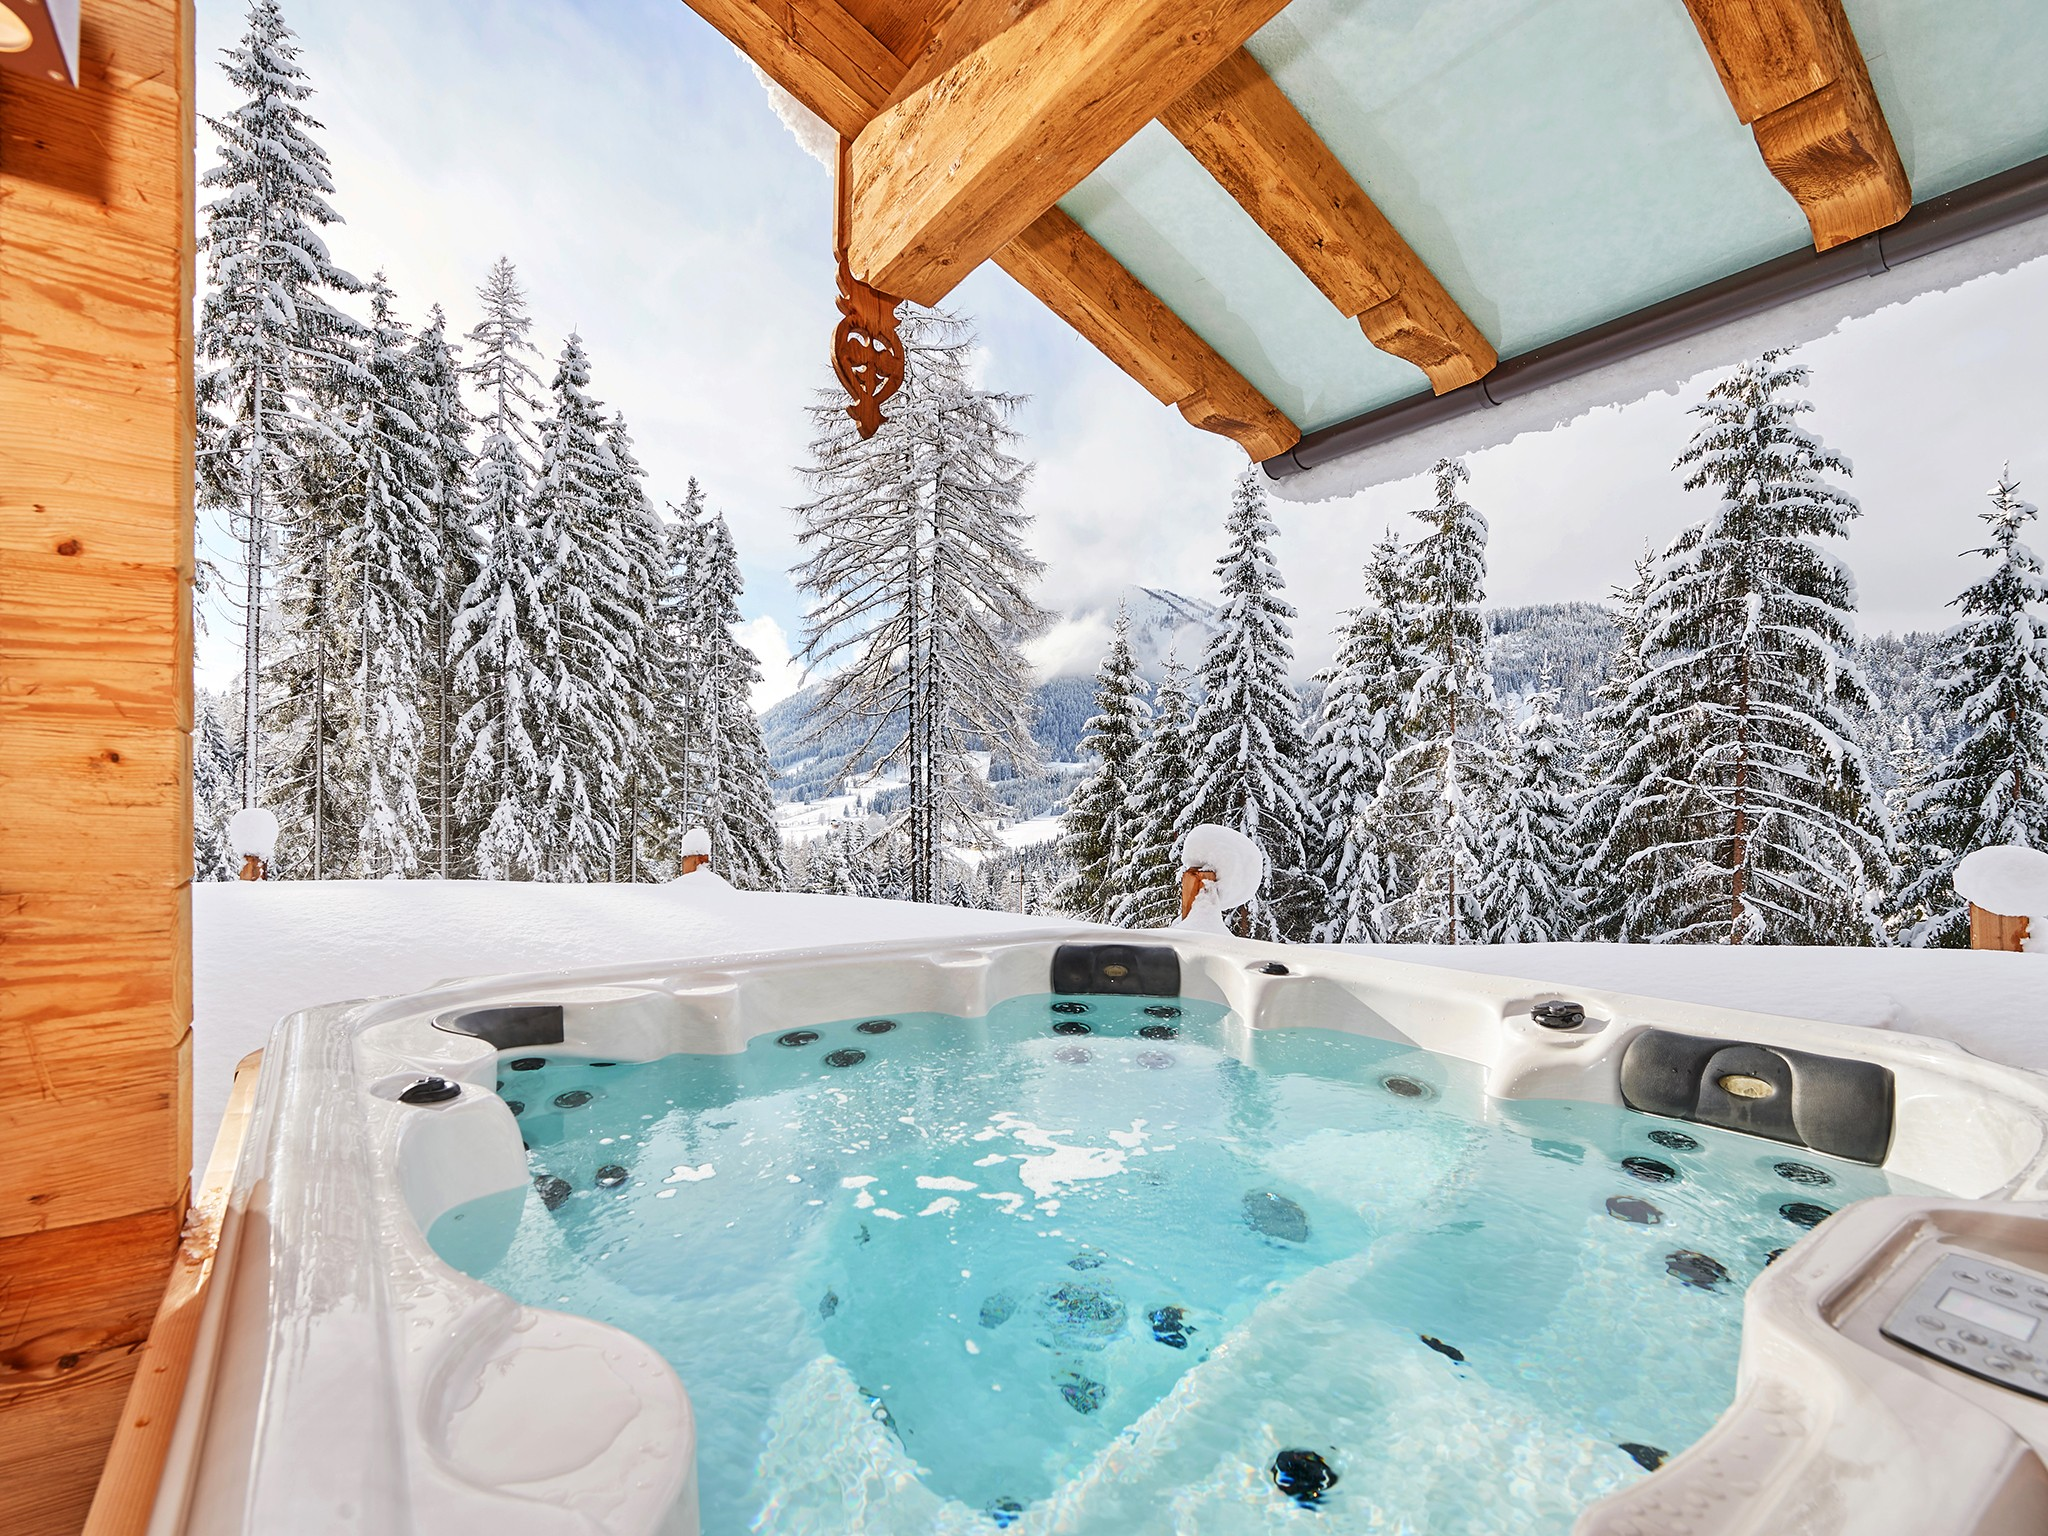 Dachstein Lodge - outdoor jacuzzi